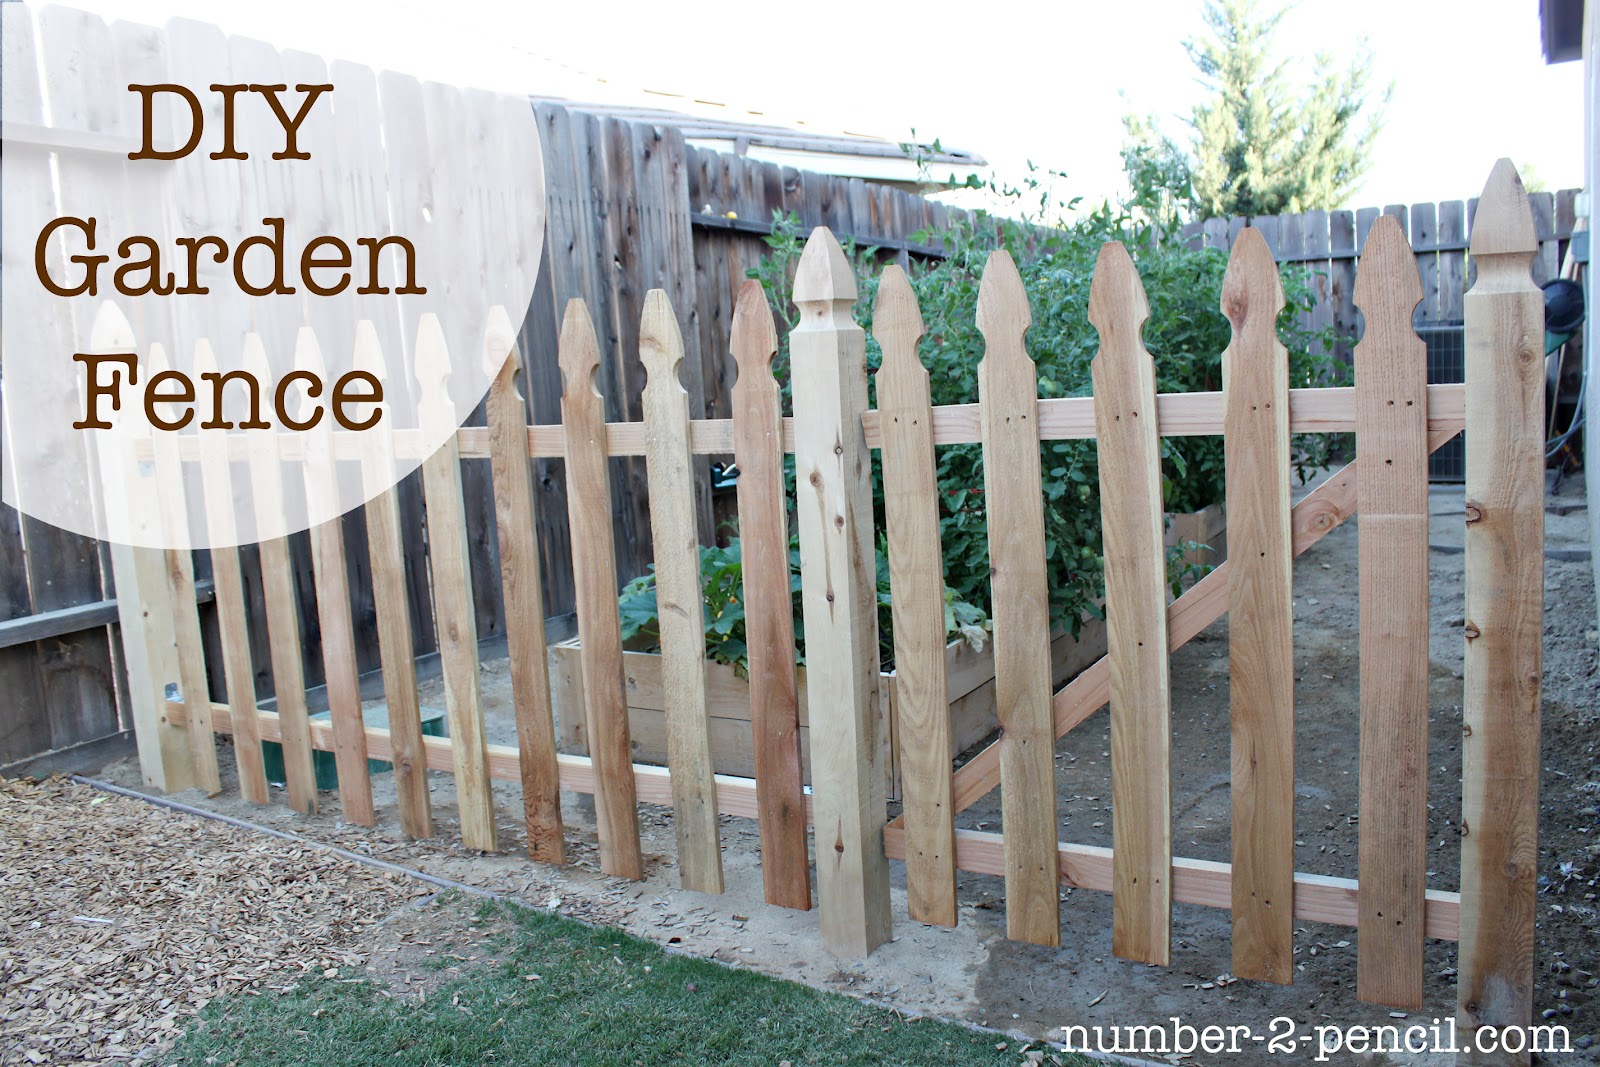 Build an easy diy garden fence no 2 pencil for Diy fence gate designs